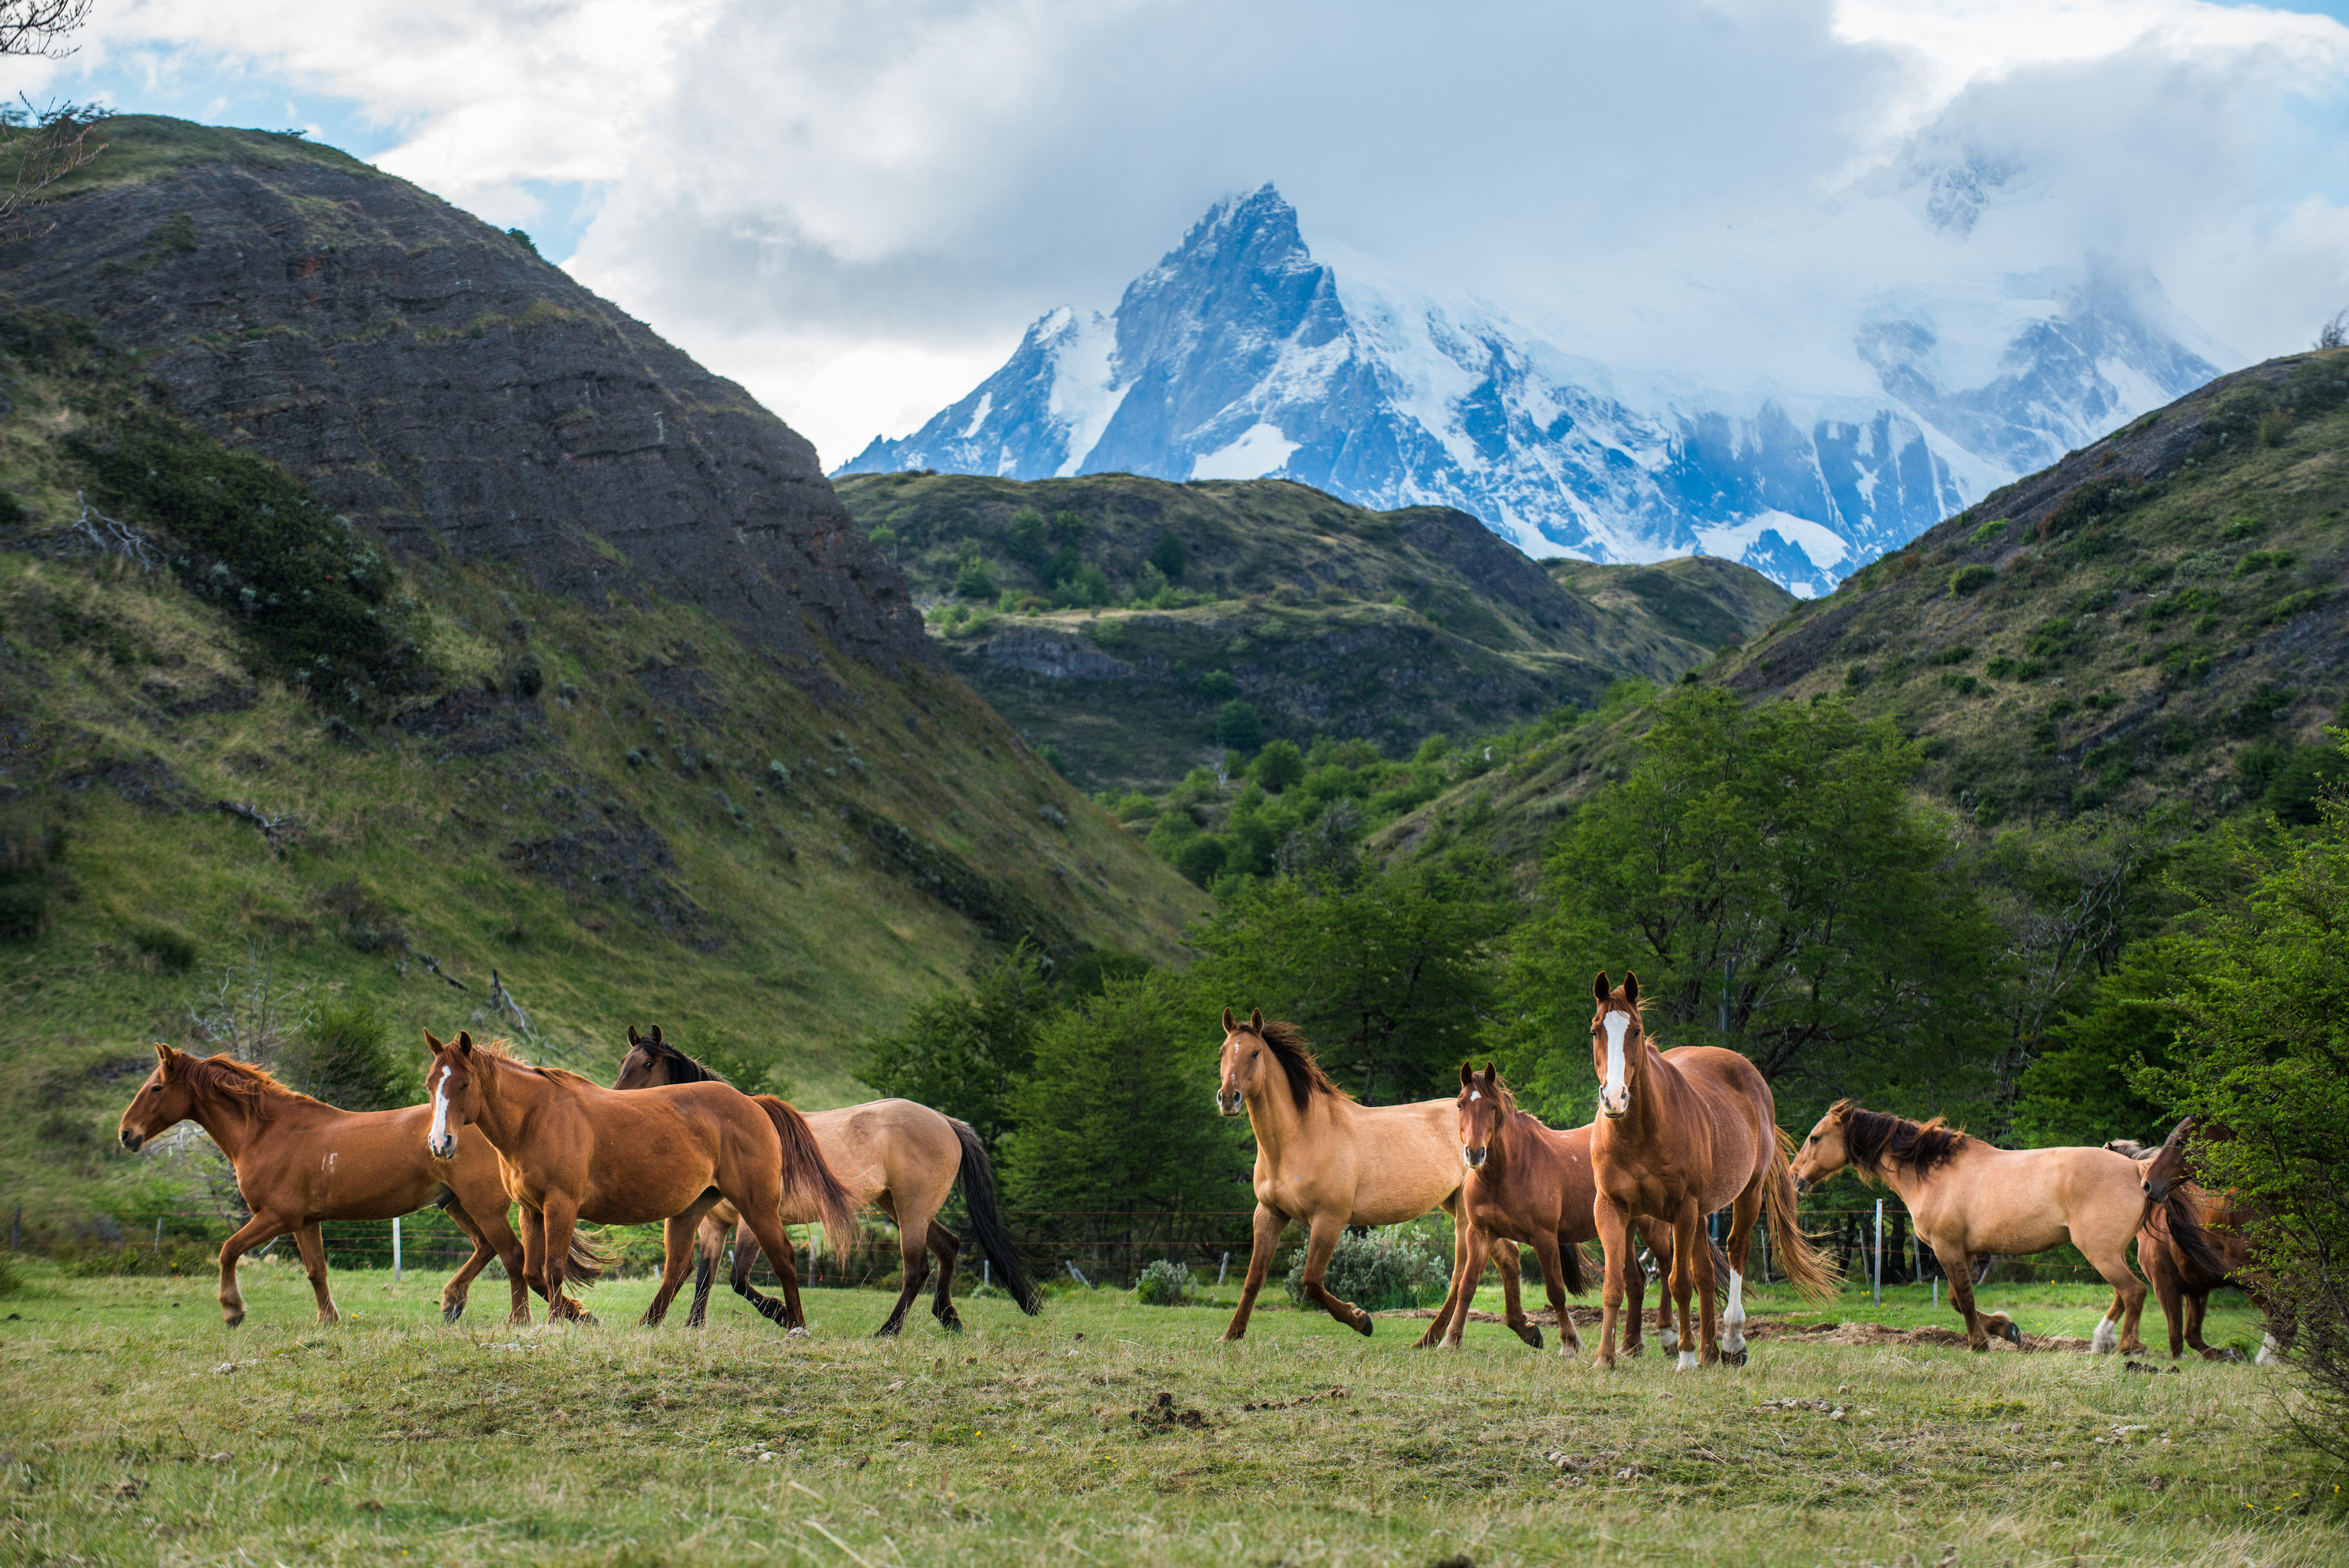 Adventure Hotels Jetsetter Guides Packing Tips Travel Tips Trip Ideas mountain sky cow outdoor grass mountainous landforms pasture horse wilderness group grassland cattle animal ecosystem grazing herd mountain range meadow mammal landscape prairie background valley plateau horse like mammal mare hillside lush distance highland